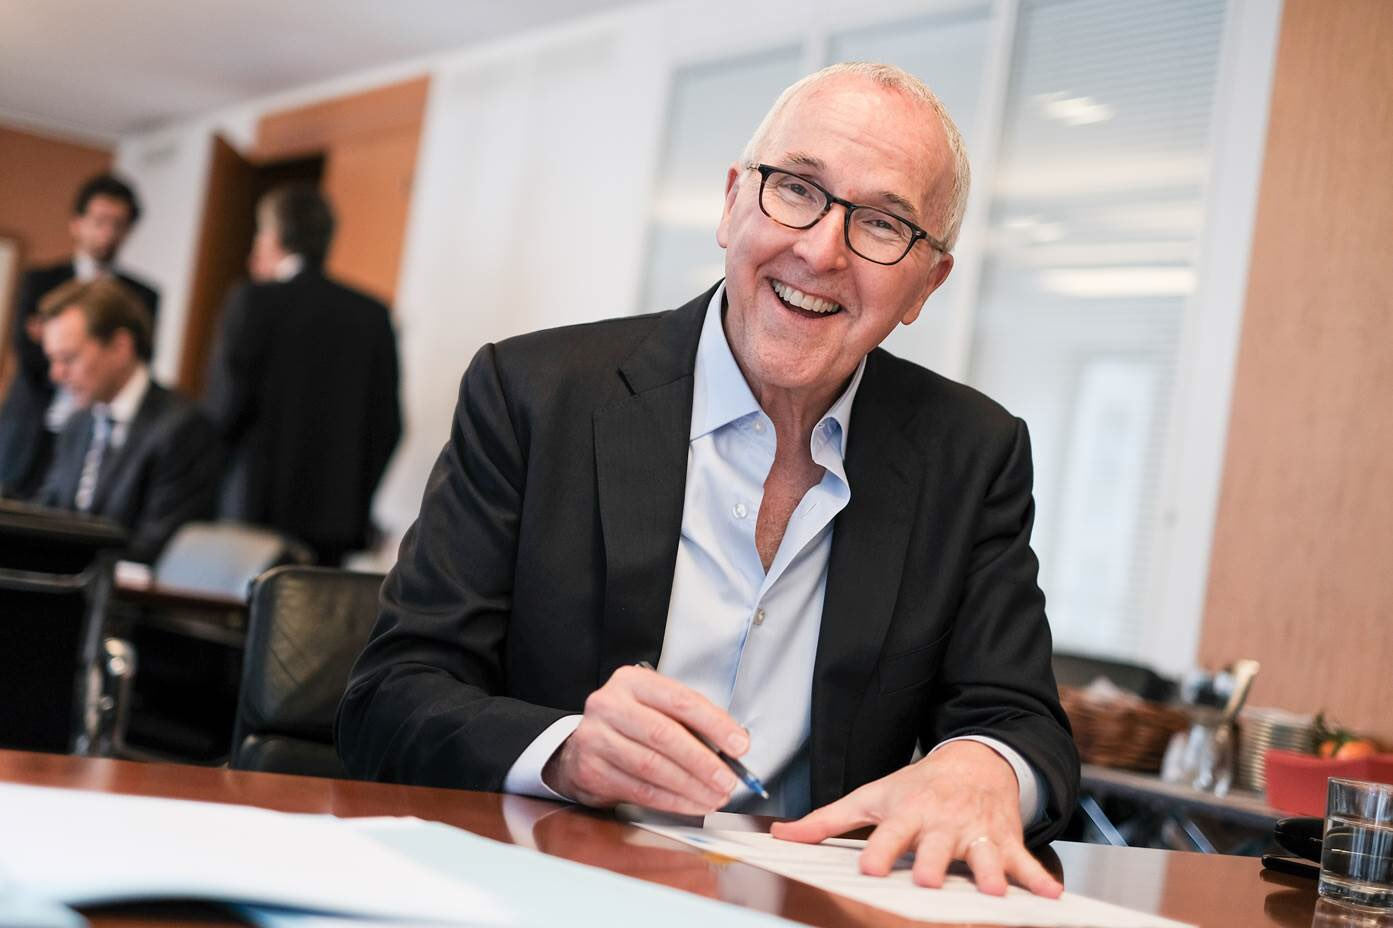 [Staff] Frank McCourt actionnaire de l'OM - Page 3 Cu-2swKXYAA_oVd